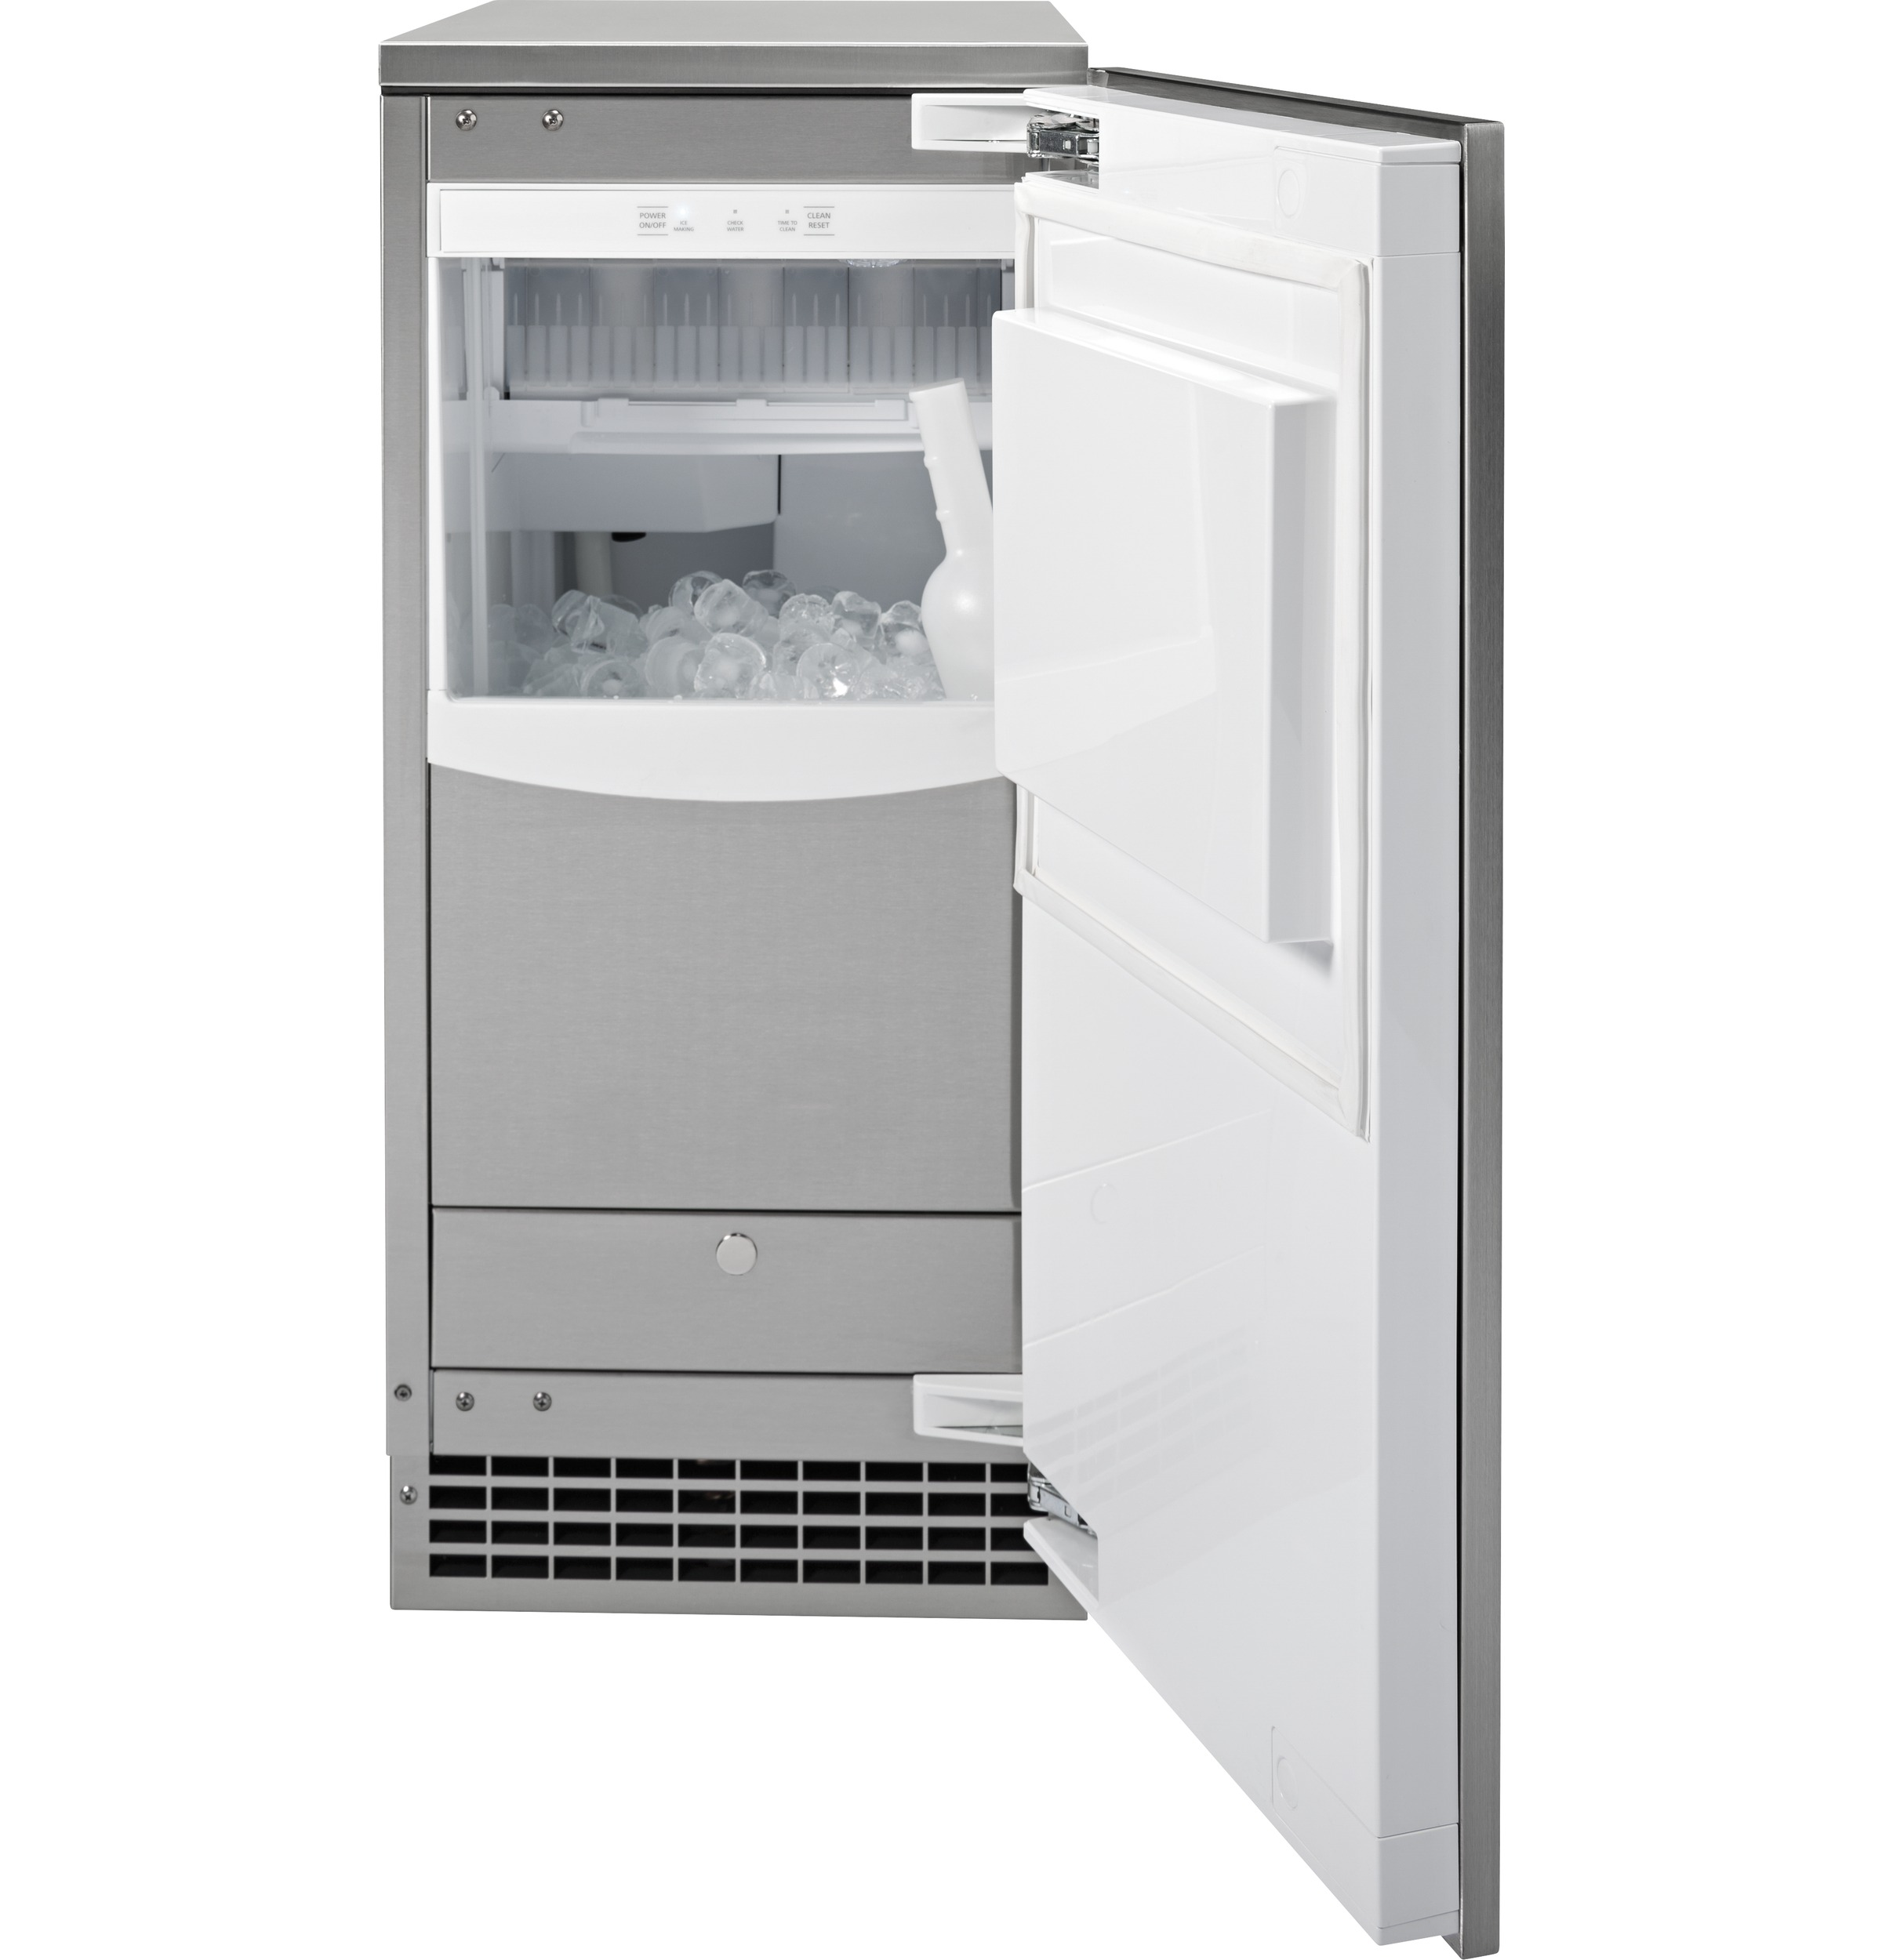 Model: UCC15NJII | GE Profile Ice Maker 15-Inch - Gourmet Clear Ice